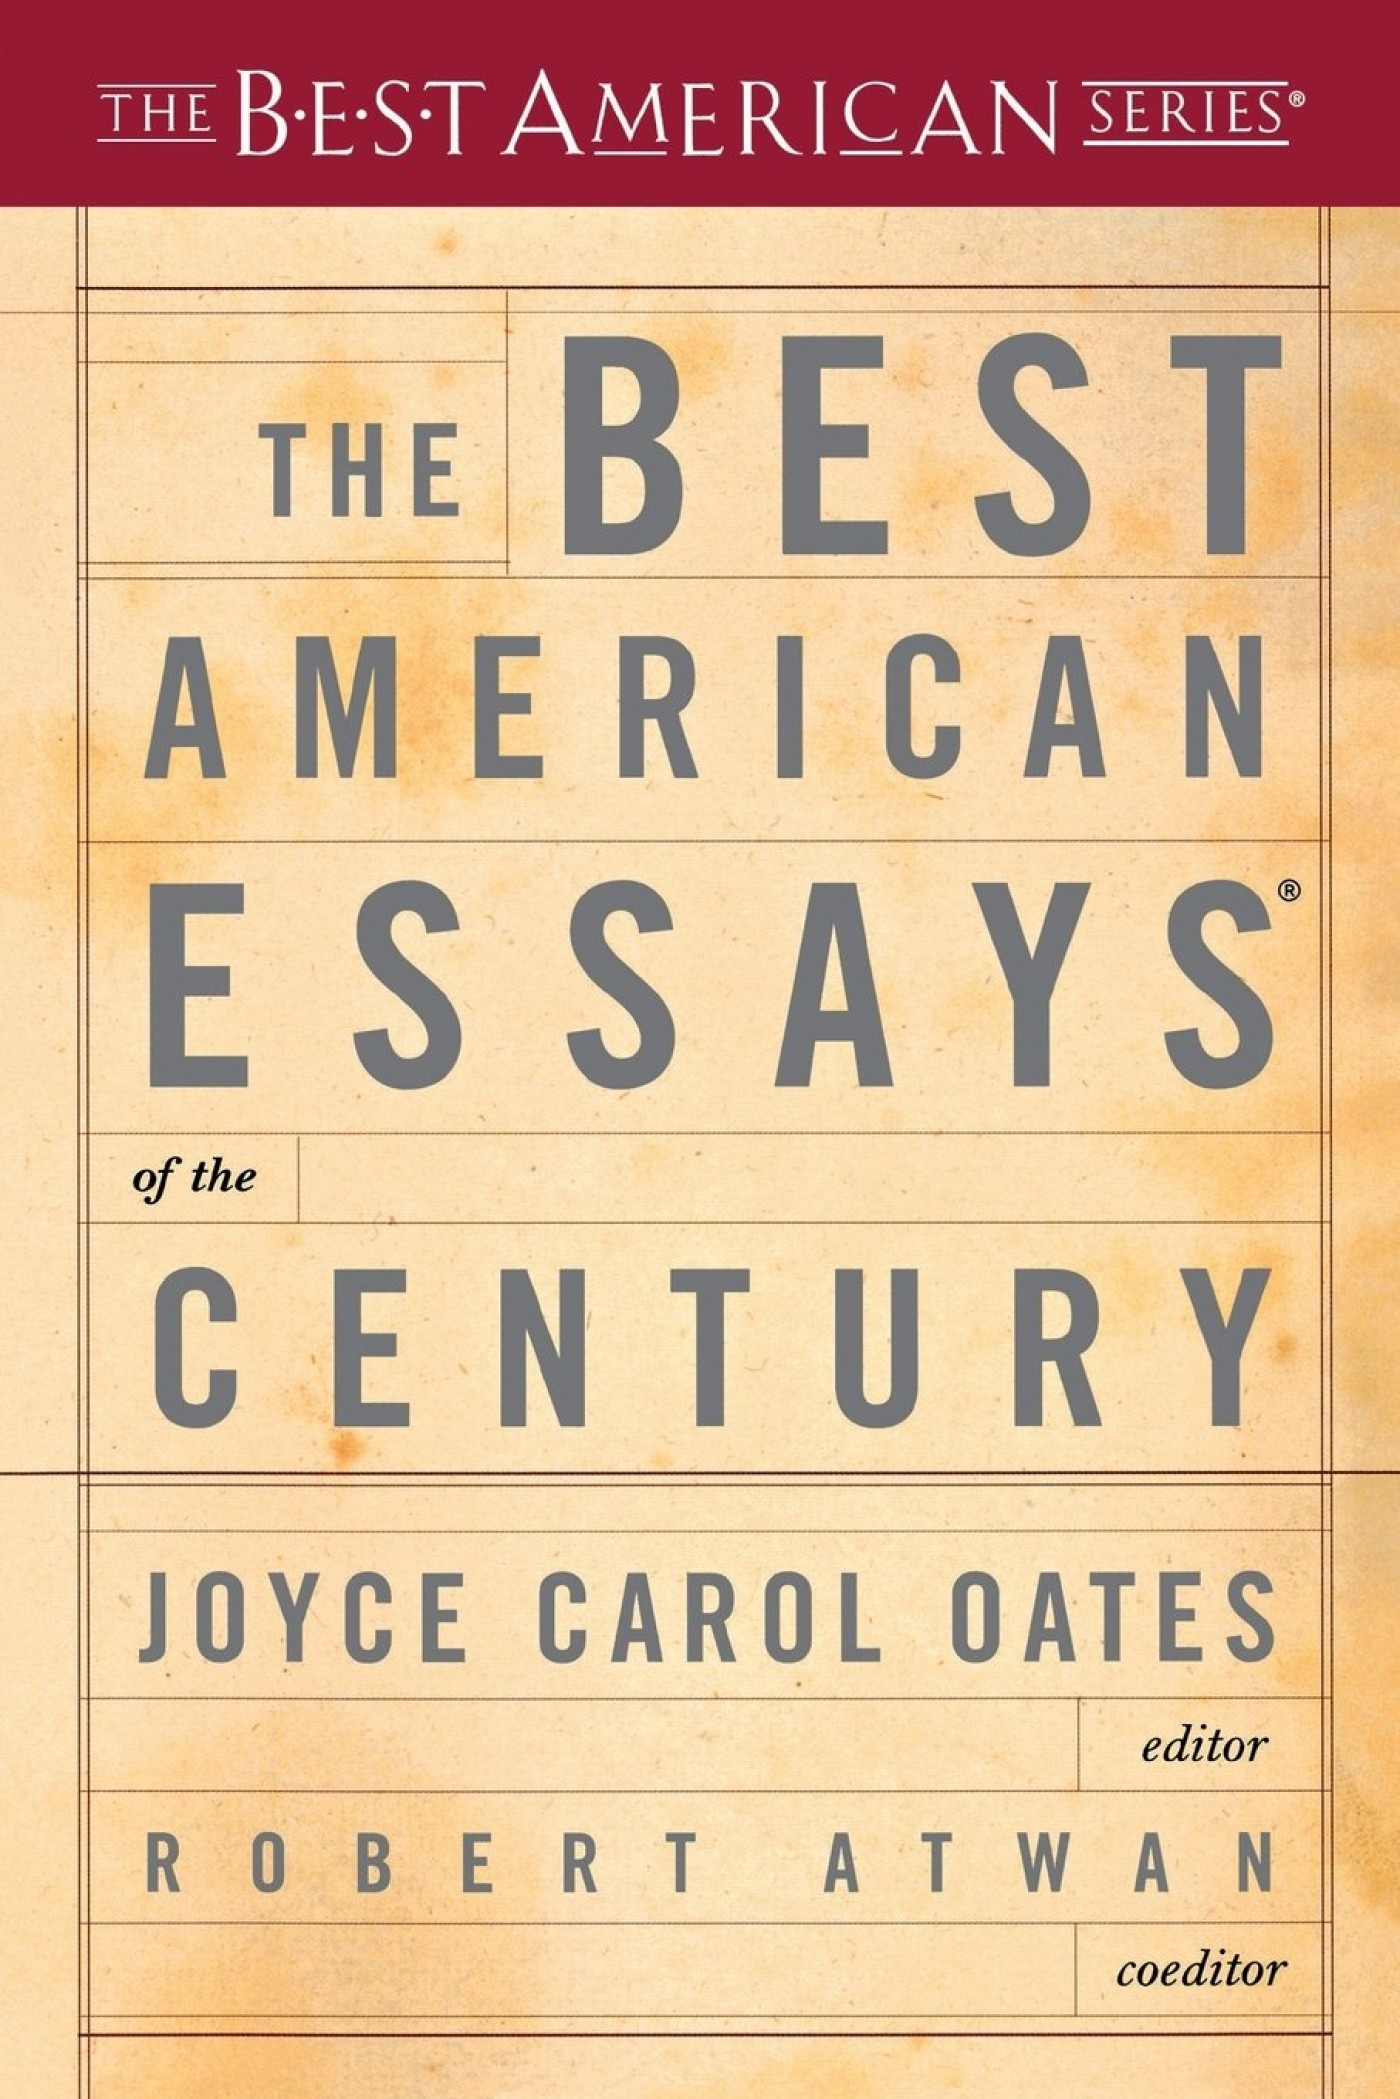 002 The Best American Essays Essay Example Wonderful 2018 Pdf 2017 Table Of Contents 2015 Free 1400